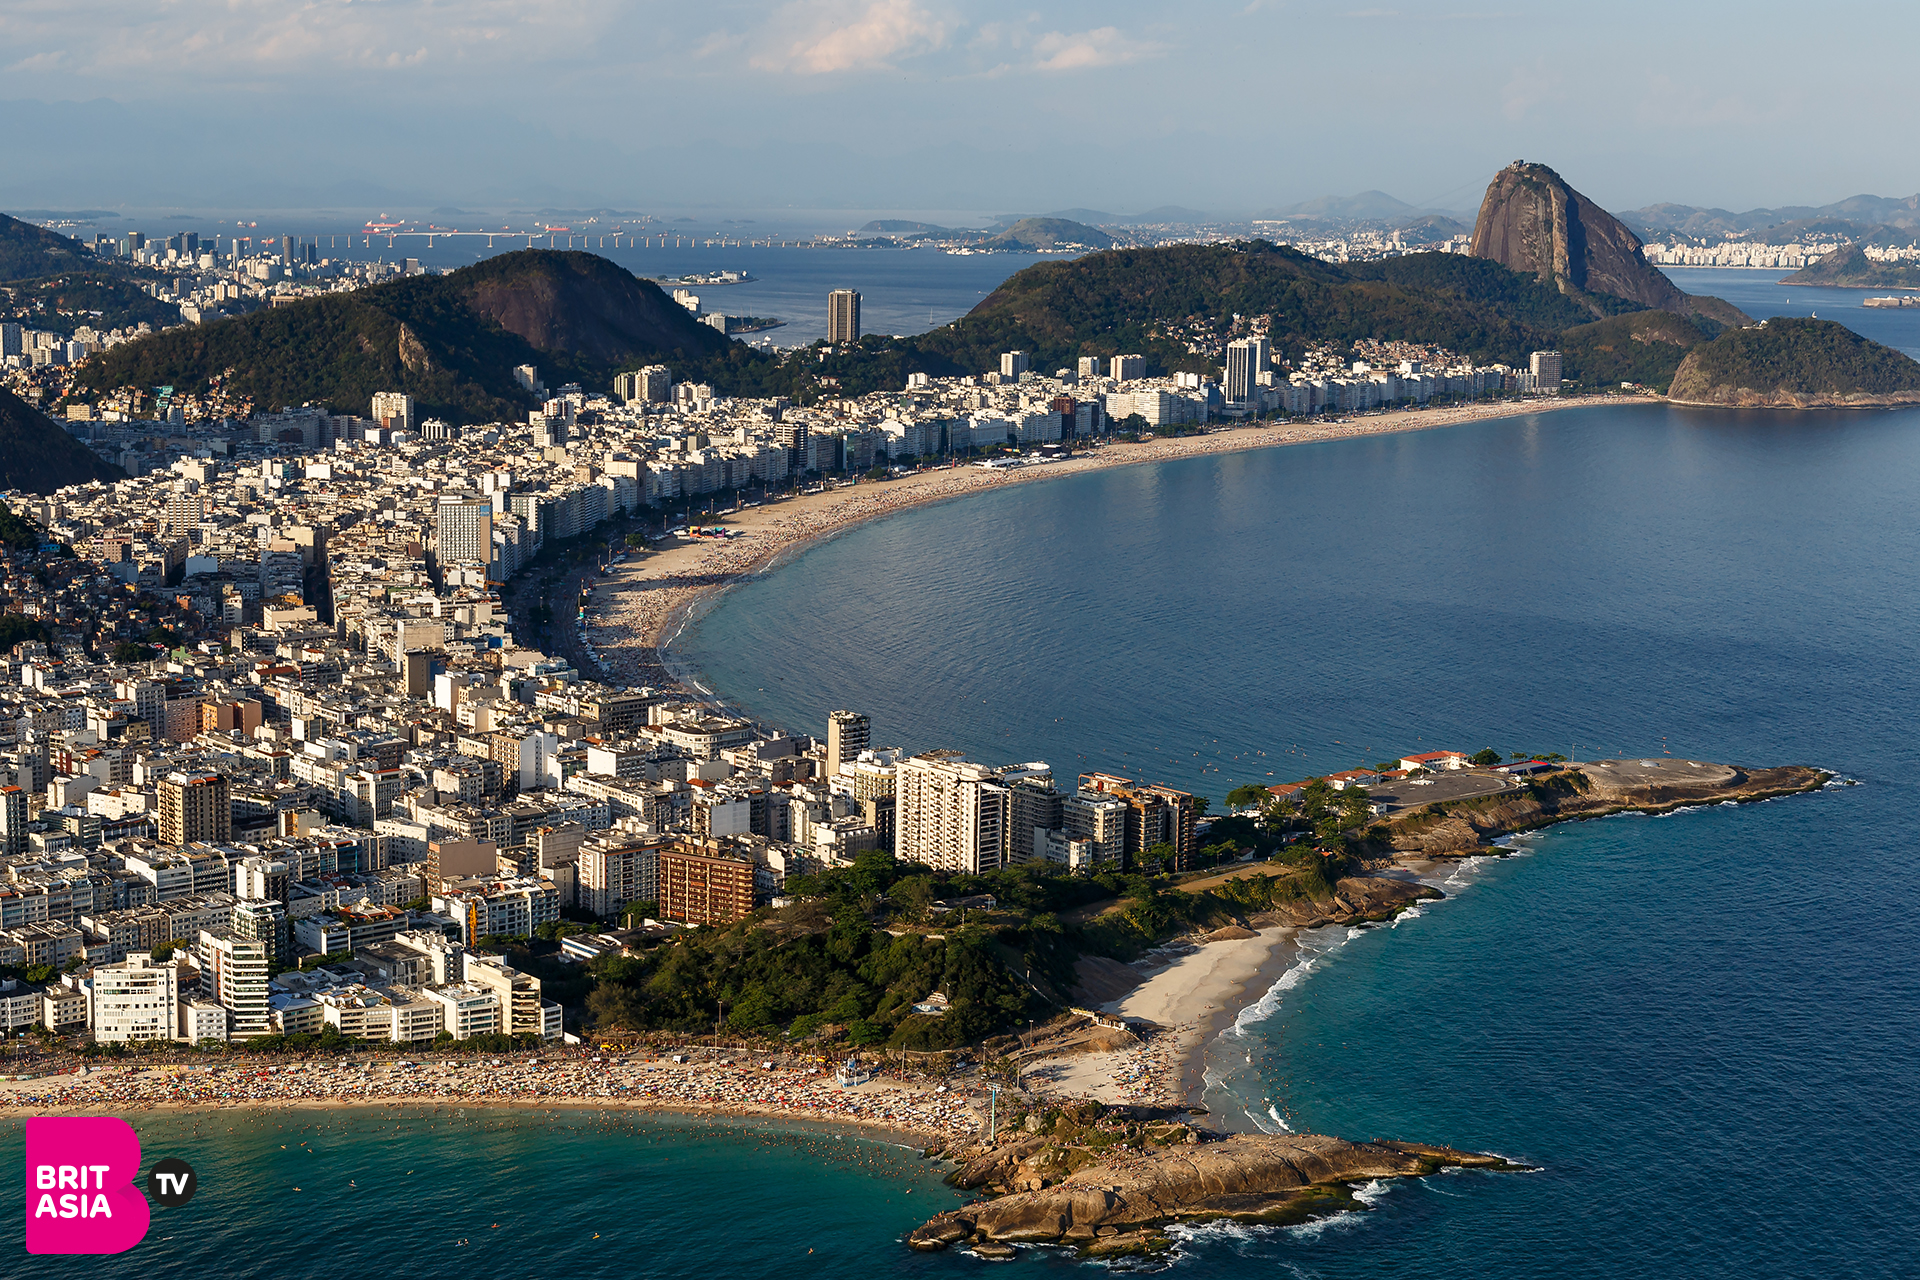 SOUTH AMERICA: WHERE SHOULD I BE SPENDING MY SUMMER?